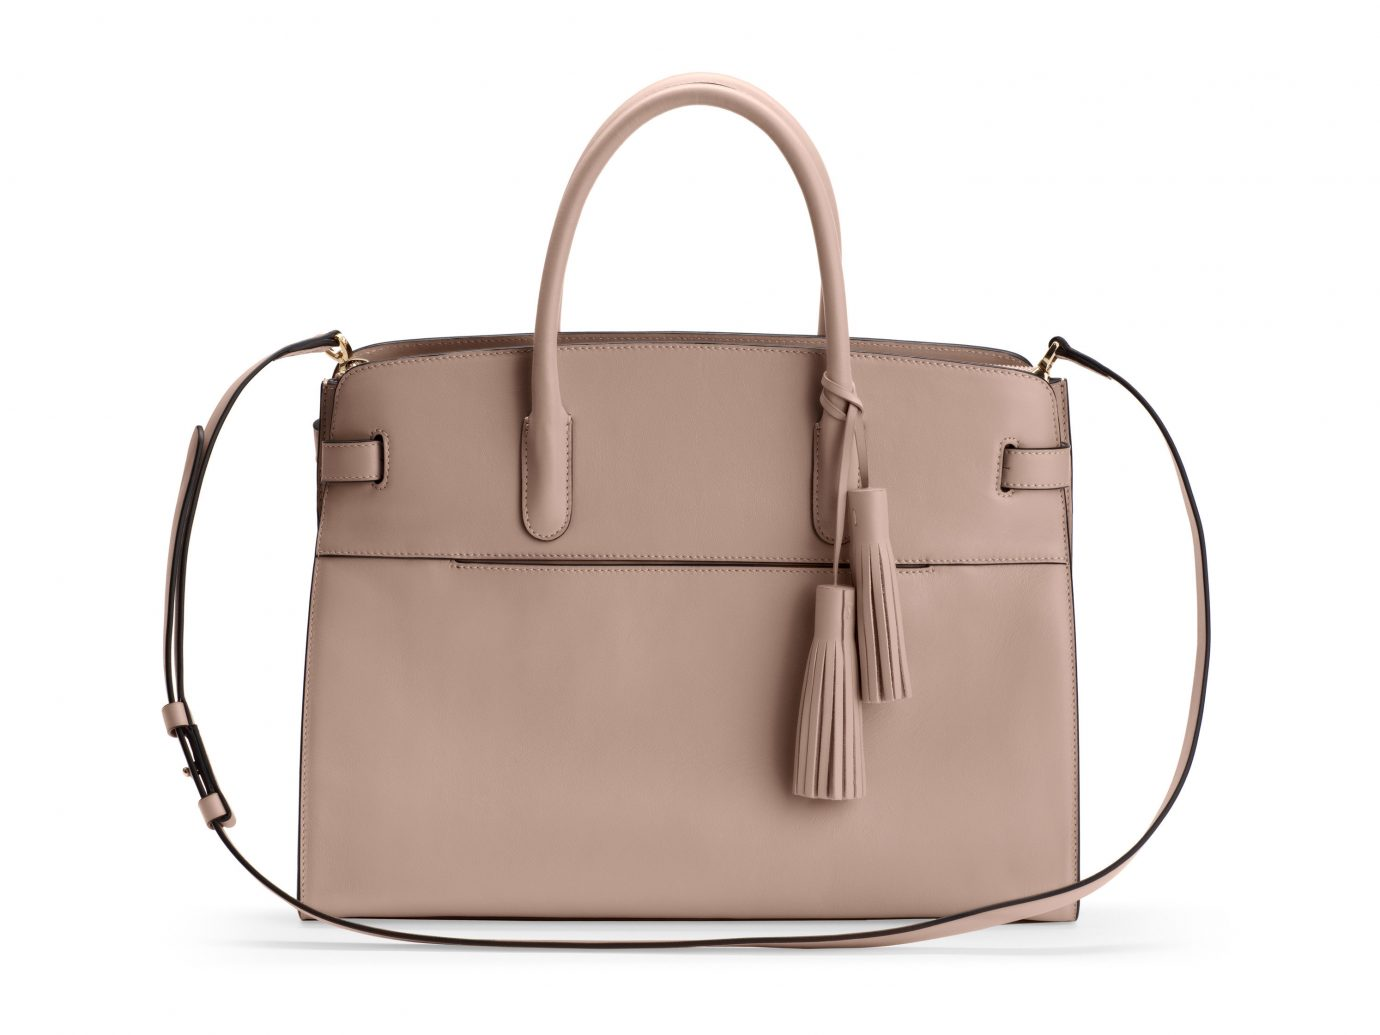 Packing Tips Style + Design Travel Shop Weekend Getaways bag white handbag accessory brown leather fashion accessory shoulder bag product beige product design metal tote bag brand baggage hand luggage luggage & bags case